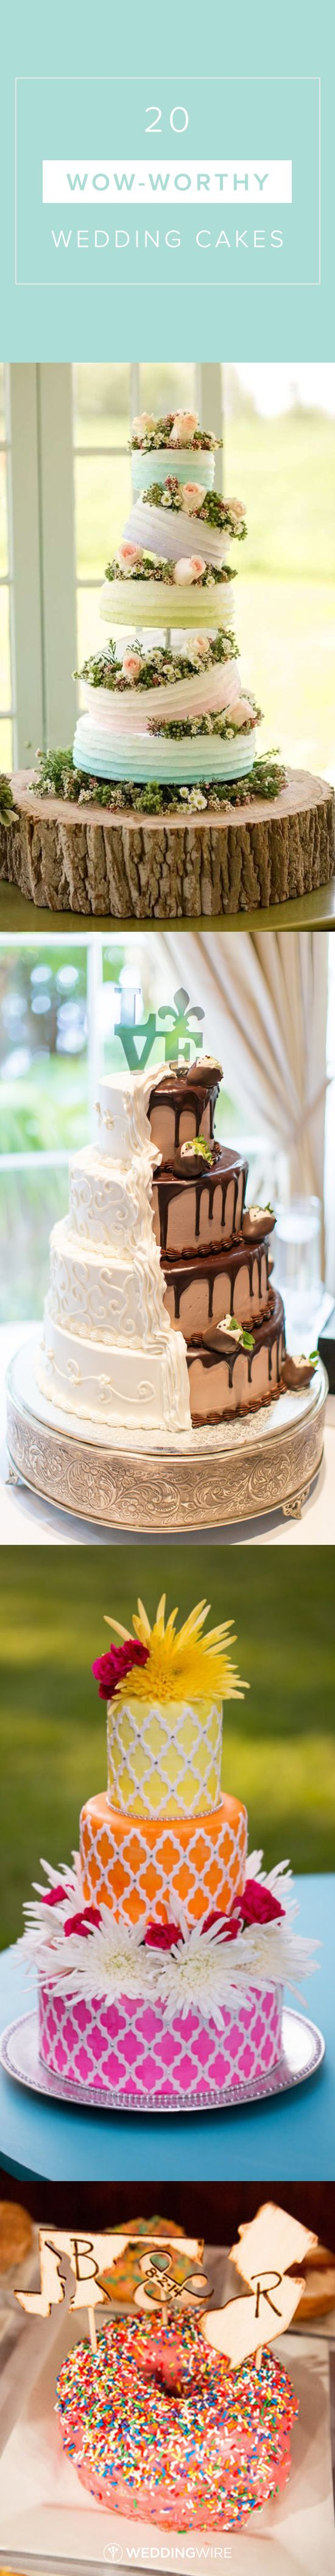 20 Wow-Worthy Wedding Cake Ideas - Explore wedding cake ideas for every style from fancy five-tier cakes to naked cakes on @weddingwire! {Katelyn James, Thompson Photography Group, Cindys Cakery, LLC, Artistic Imagez}